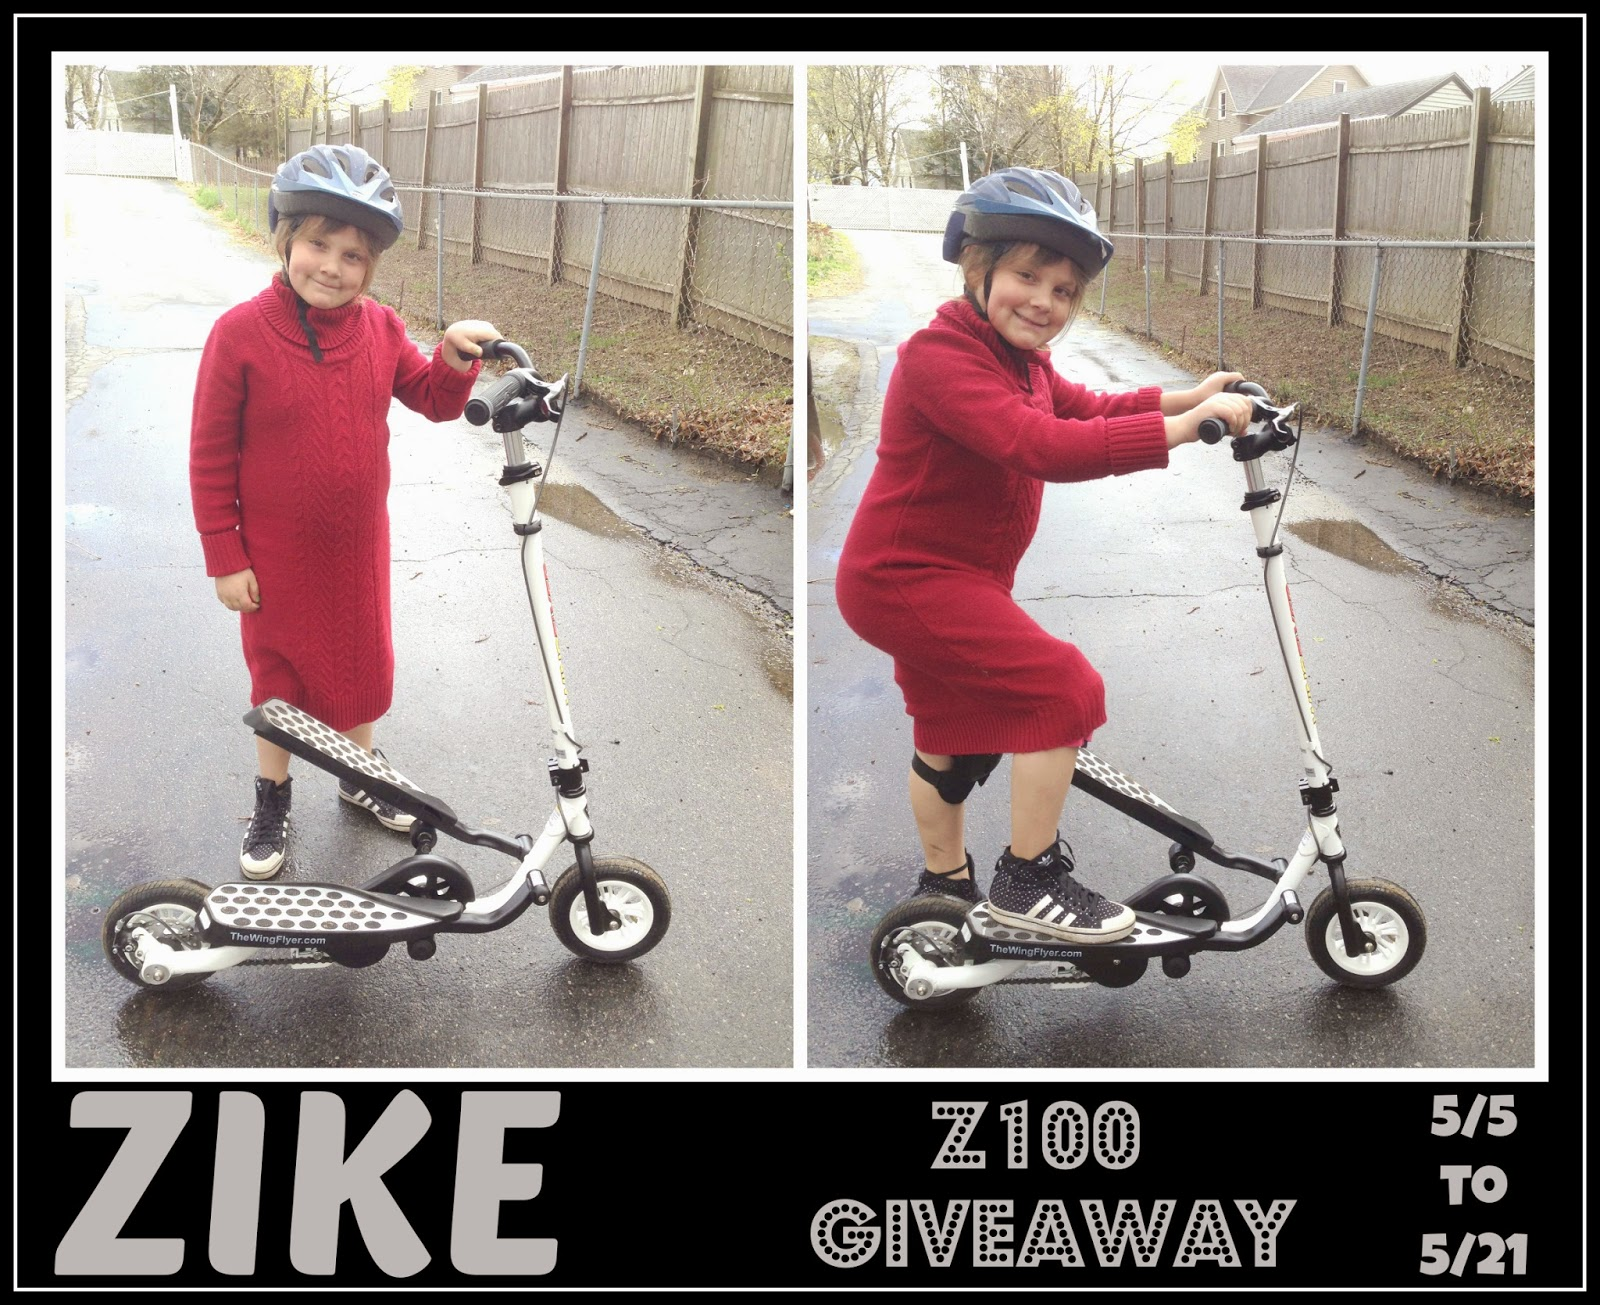 Enter The Zike Z100 Scooter Giveaway. Ends 5/31.